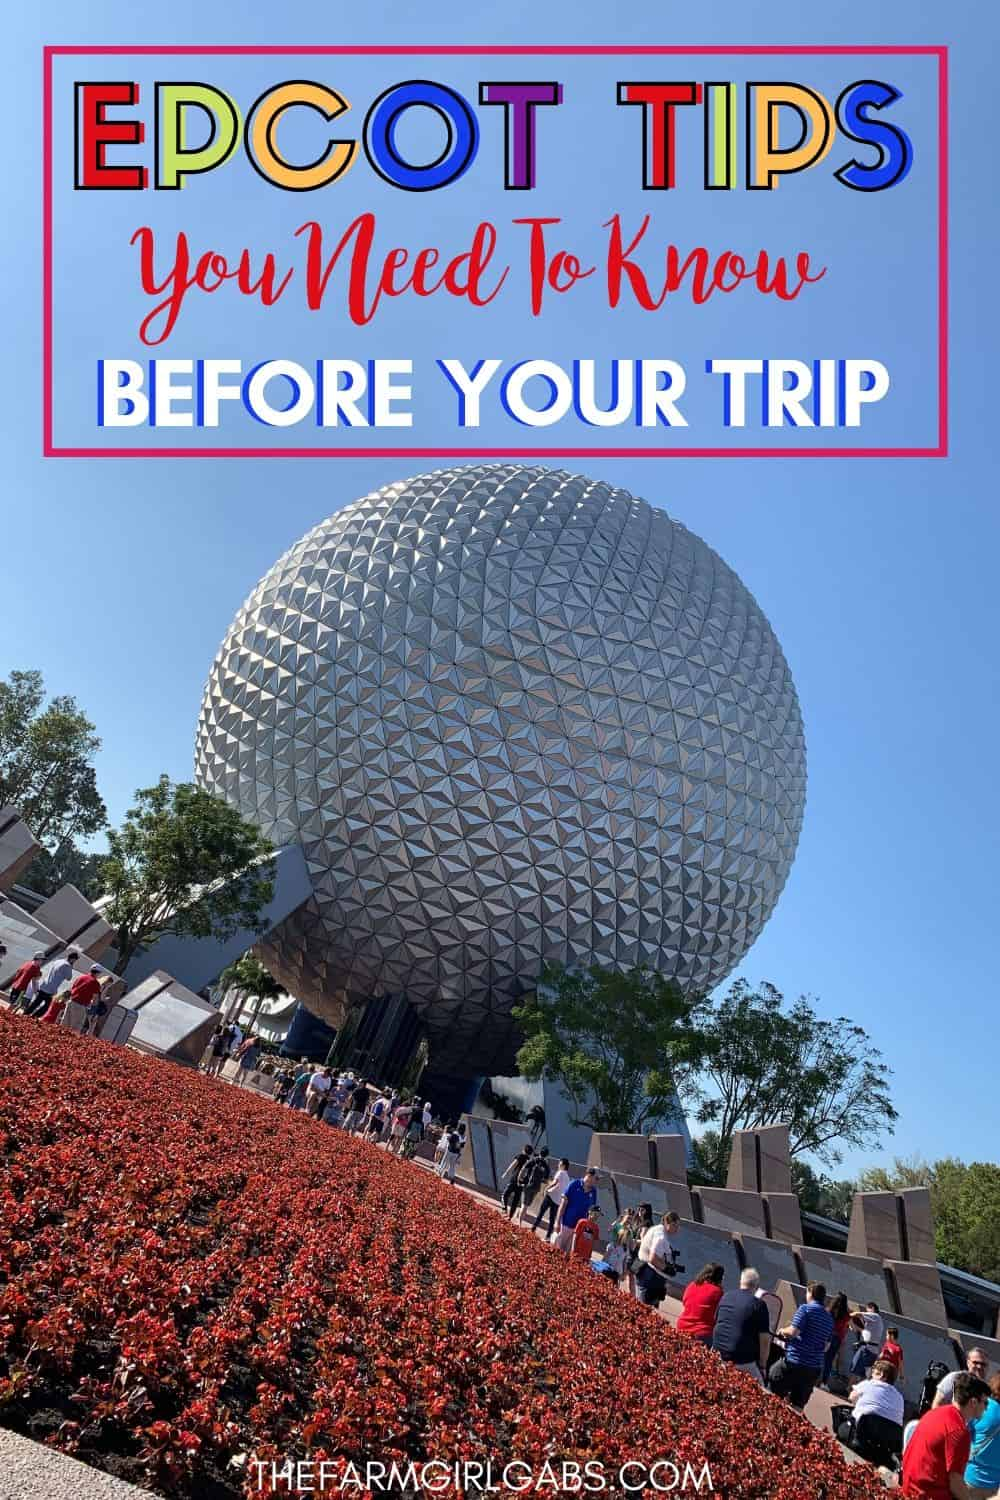 If you are unfamiliar with Epcot and not sure how to plan a day there, follow these 5 Epcot pro tips to beat the learning curve and get more out of your day. These helpful Disney Tips will get you the most our of your Disney World Vacation. #Epcot #DisneyTips #DisneyPackingList #DisneyPlanning #FamilyTravel